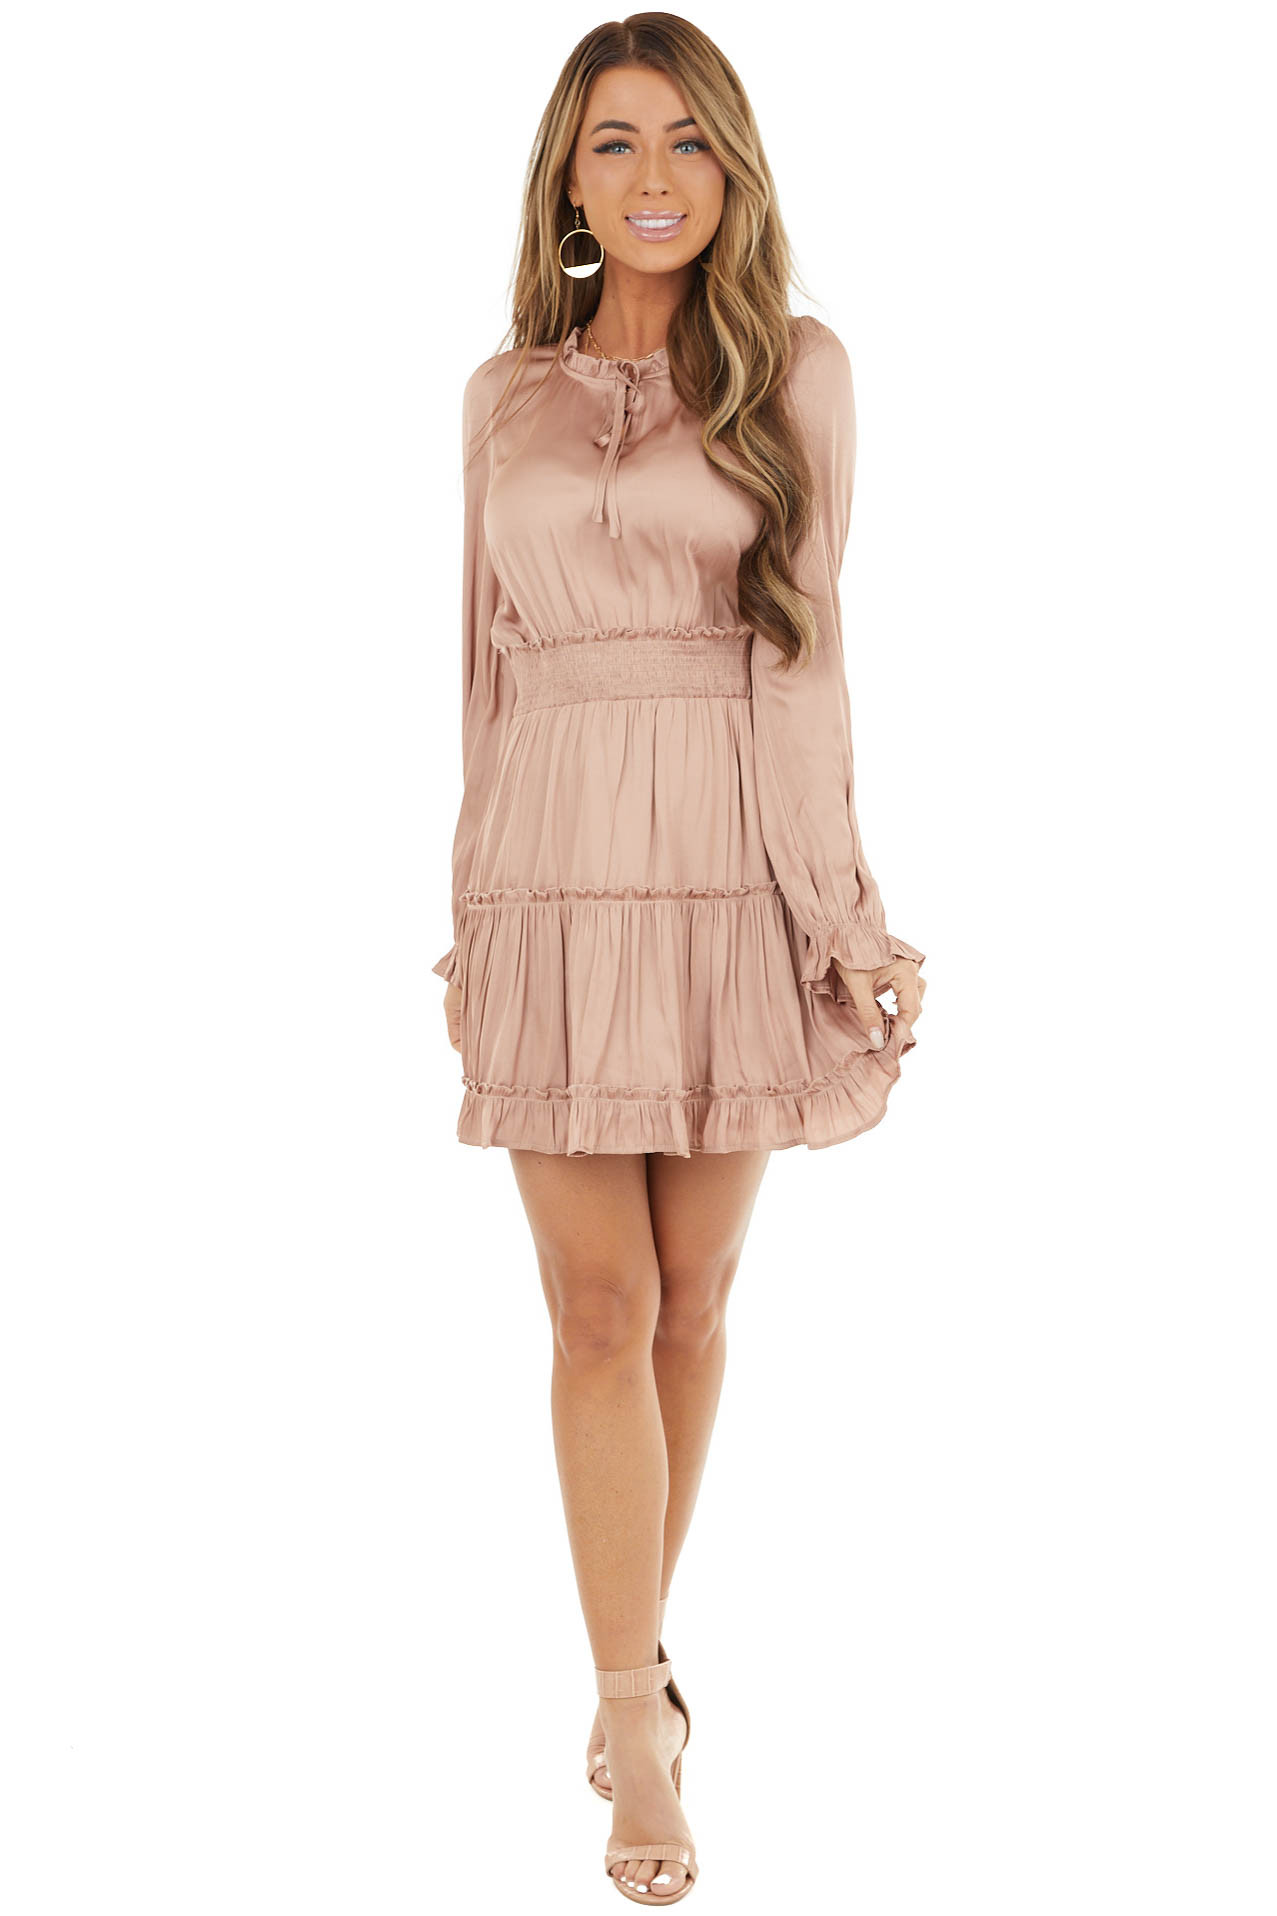 Dusty Blush Tiered Ruffle Dress with Smocked Waist Detail